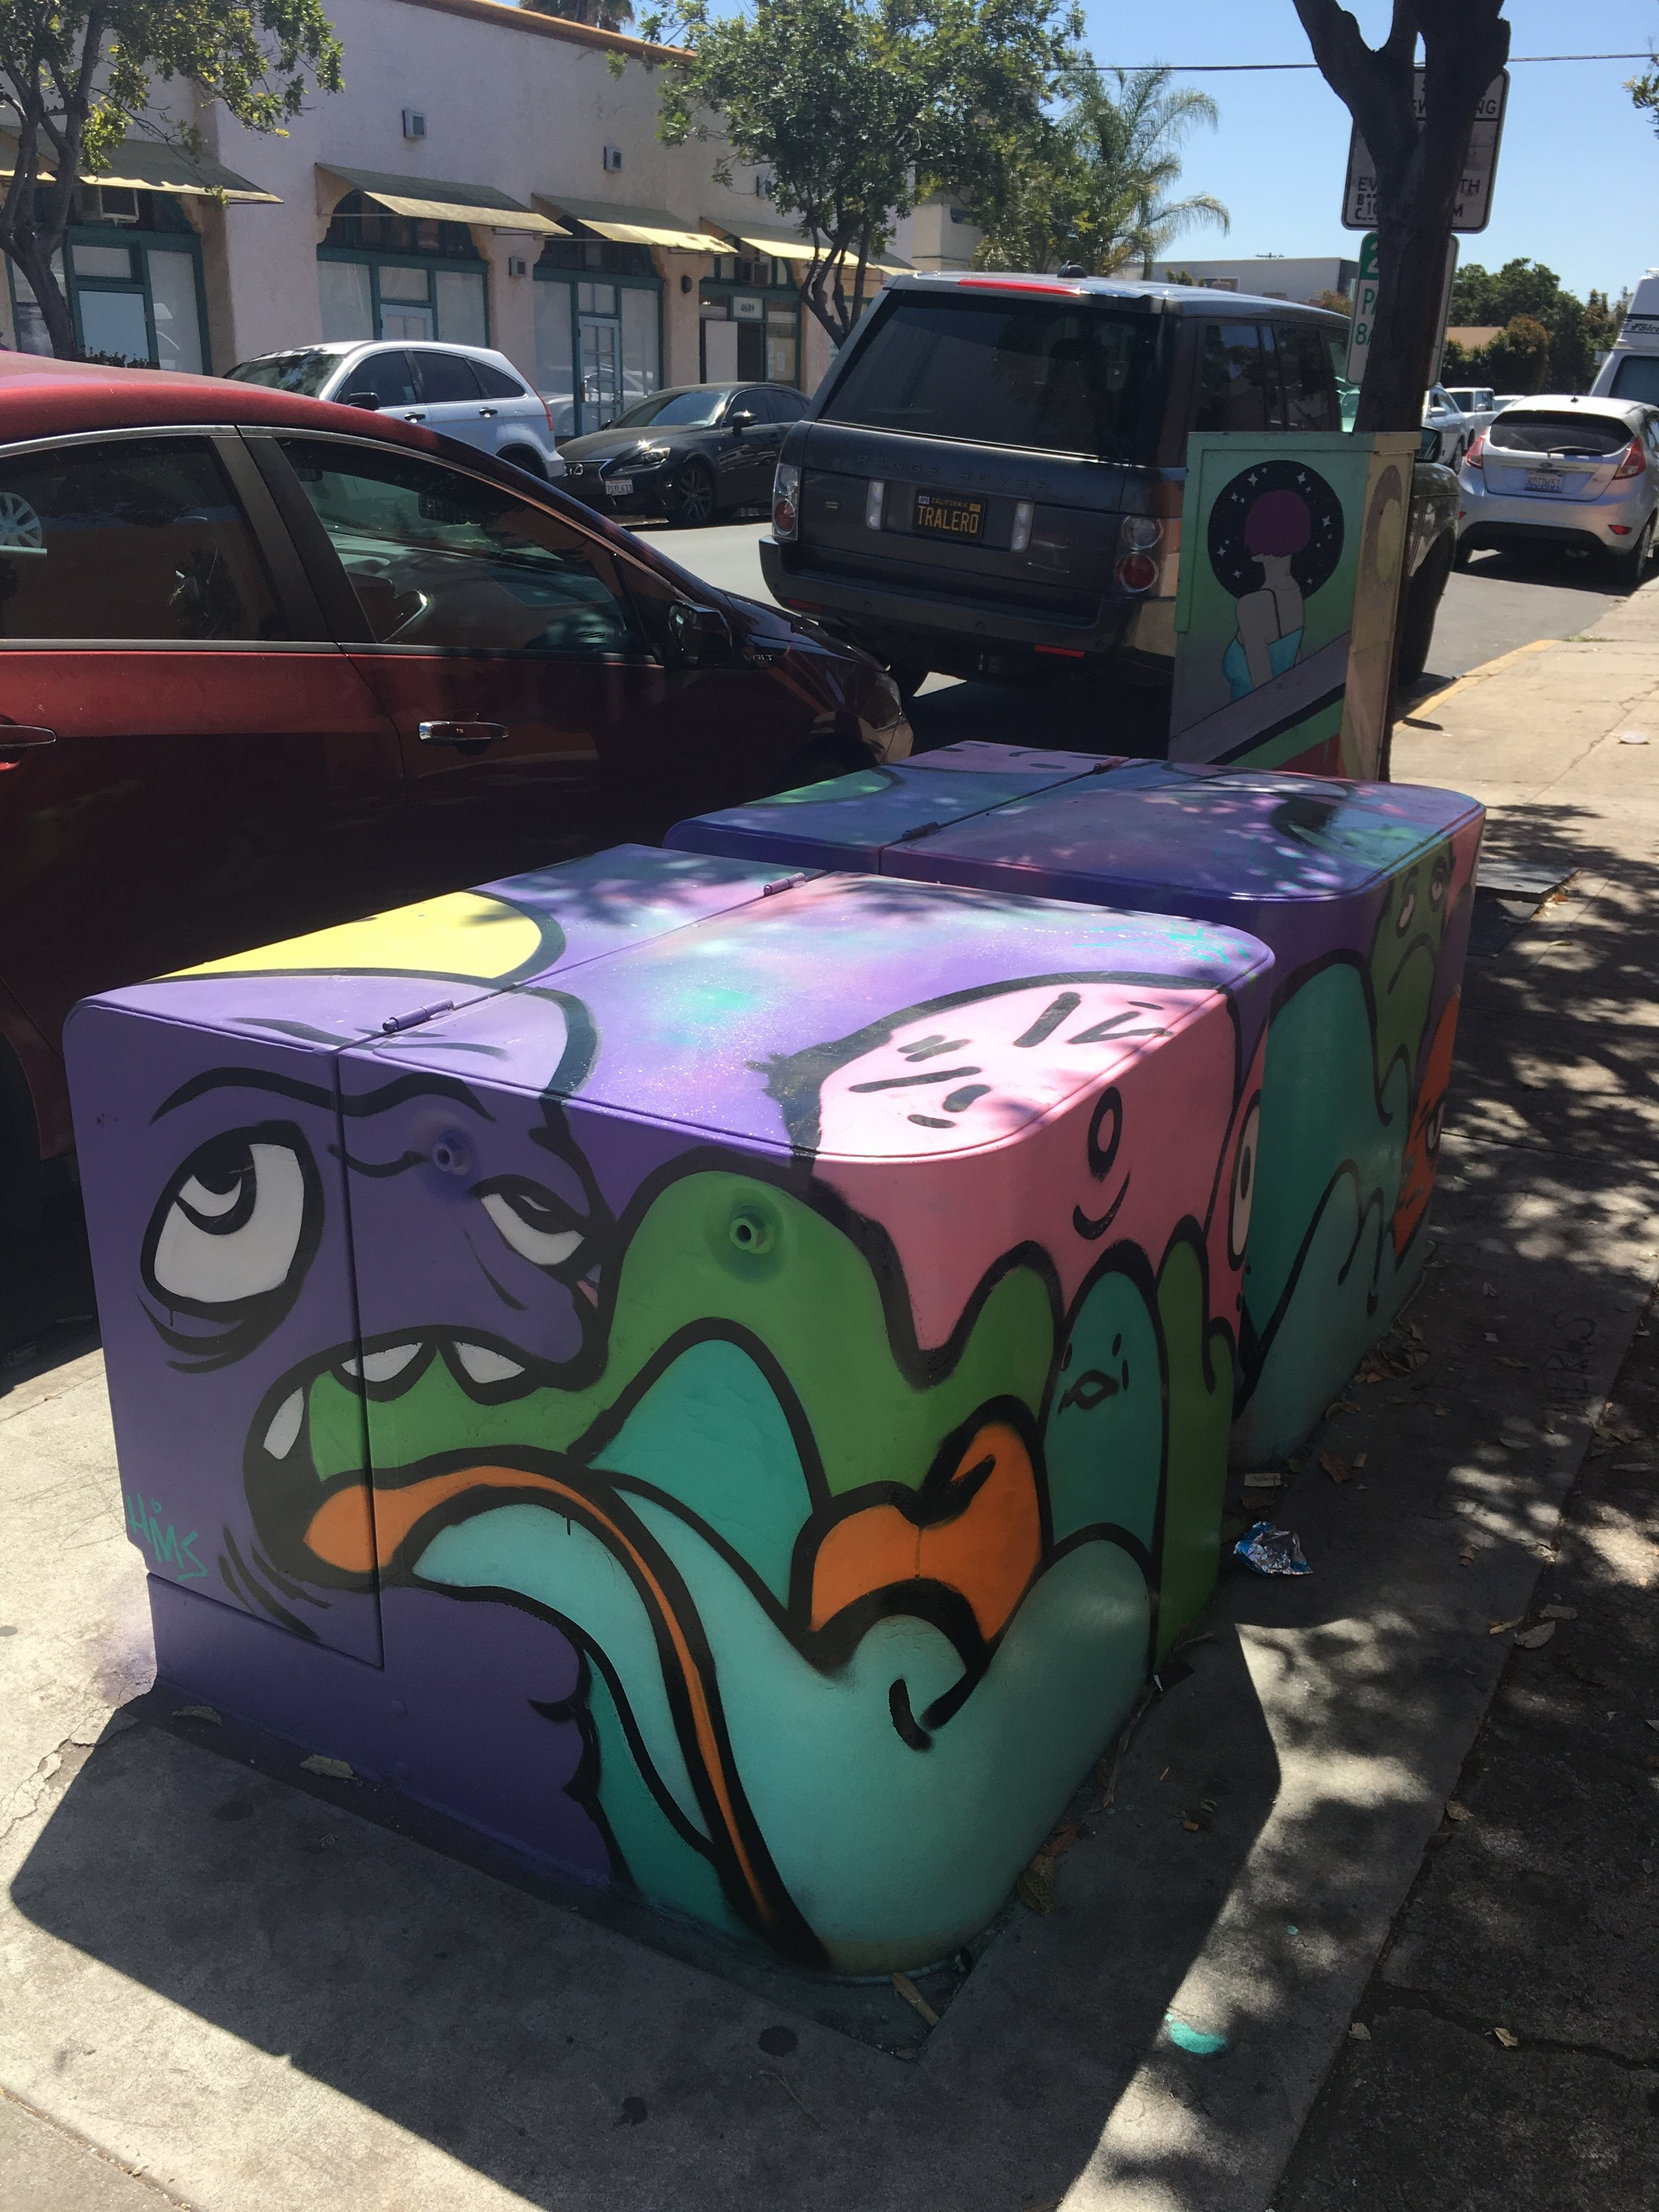 Top and side view of repainted boxes